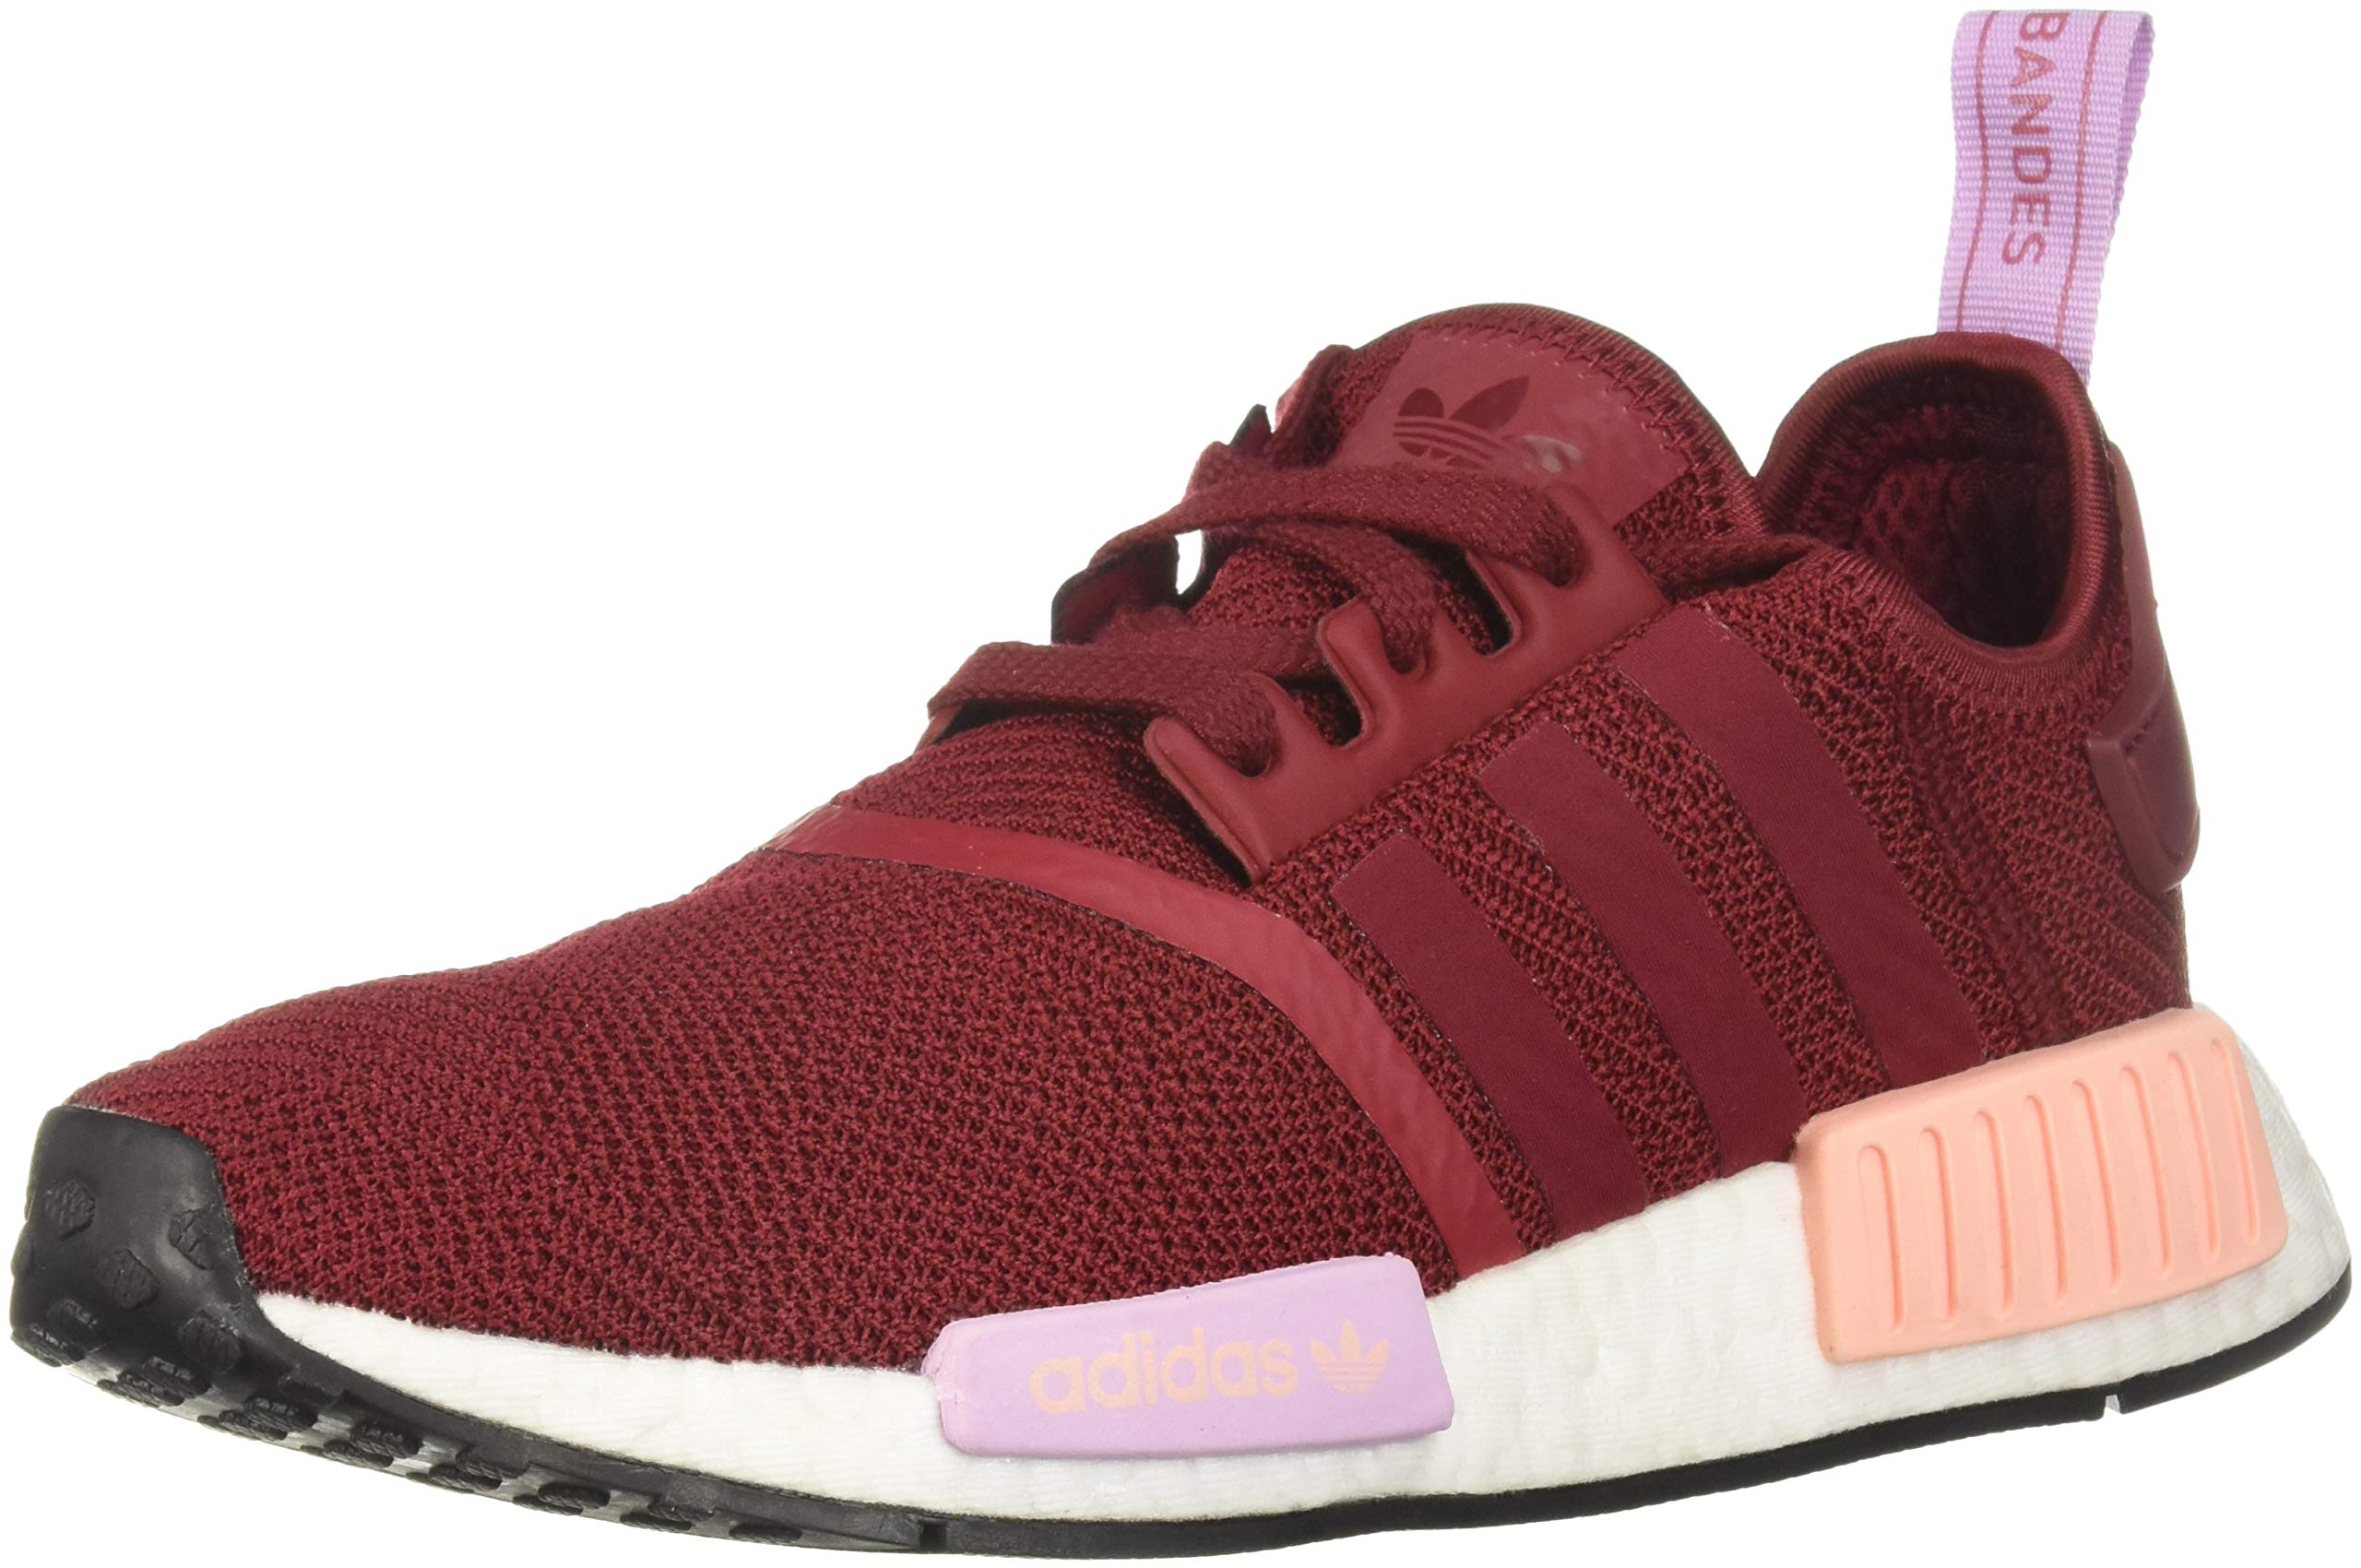 adidas Originals Women's NMD_R1, Burgundy/Clear Orange, 5 M US